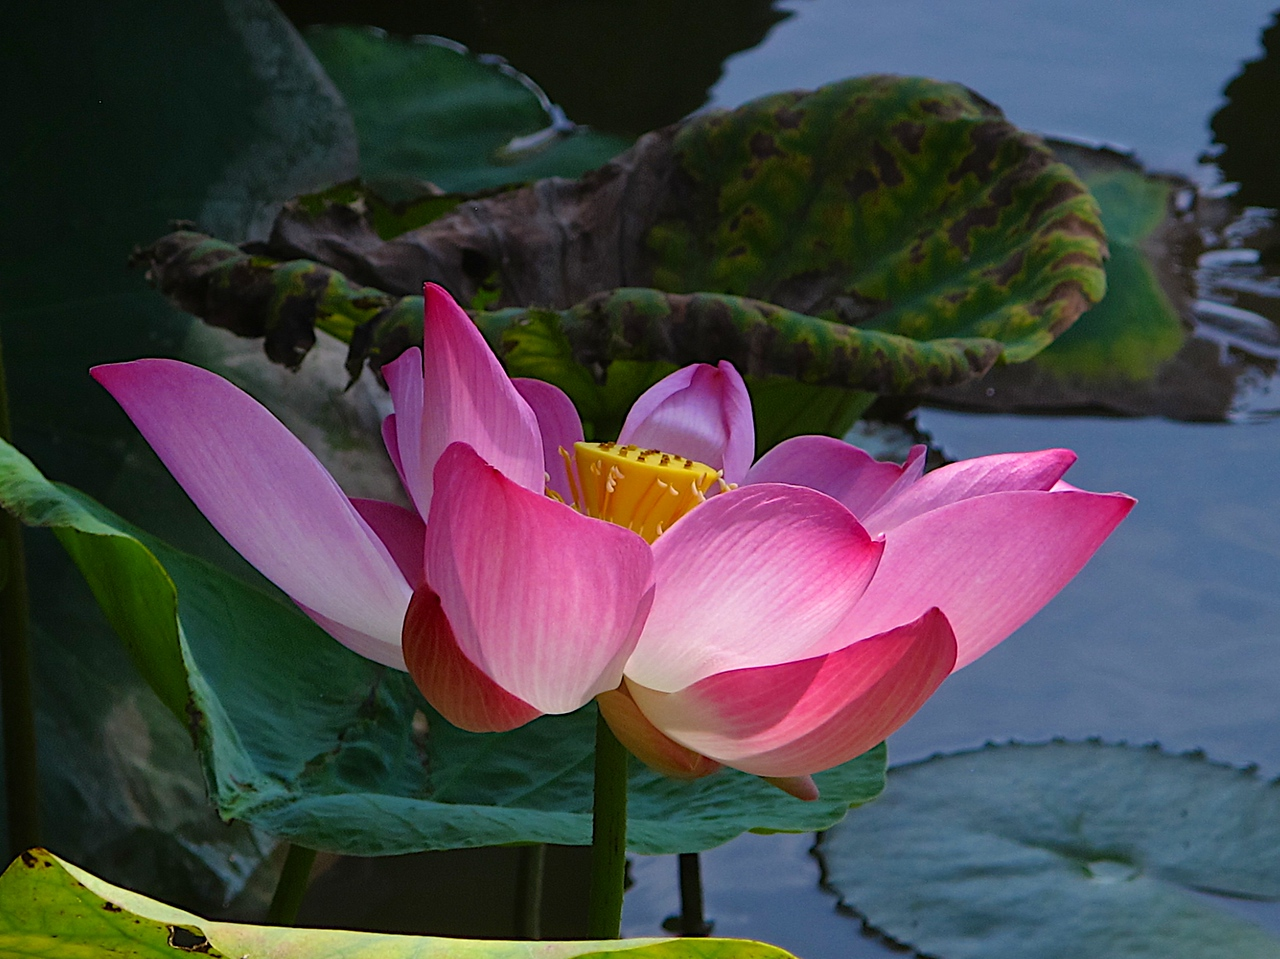 Researchers report that the lotus has the remarkable ability to regulate the temperature of its flowers to within a narrow range just as humans and other warmblooded animals do. They suspect the flowers may be doing this to attract coldblooded insect pollinators.